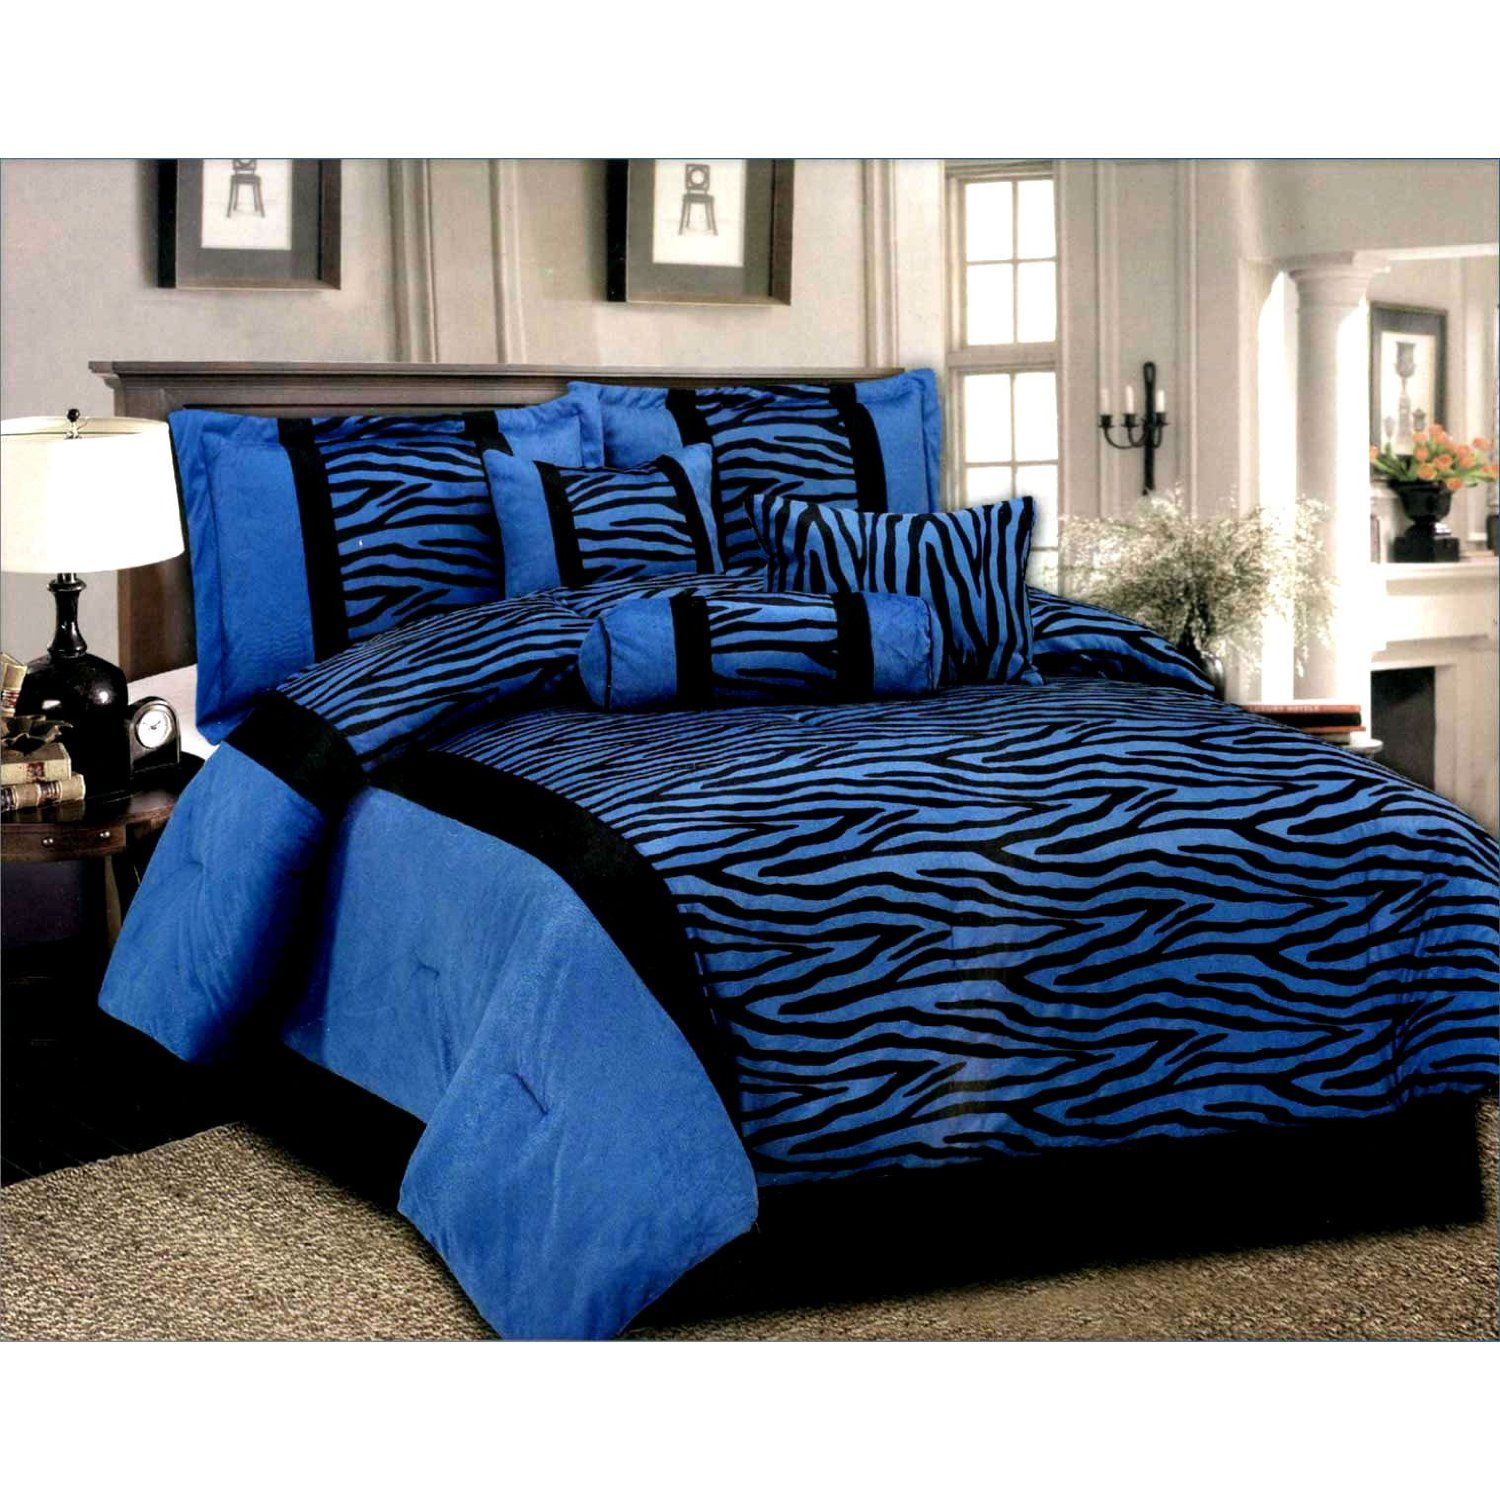 Queen Black Blue 7 Pcs Luxury Micro Fur Zebra Pattern Bed